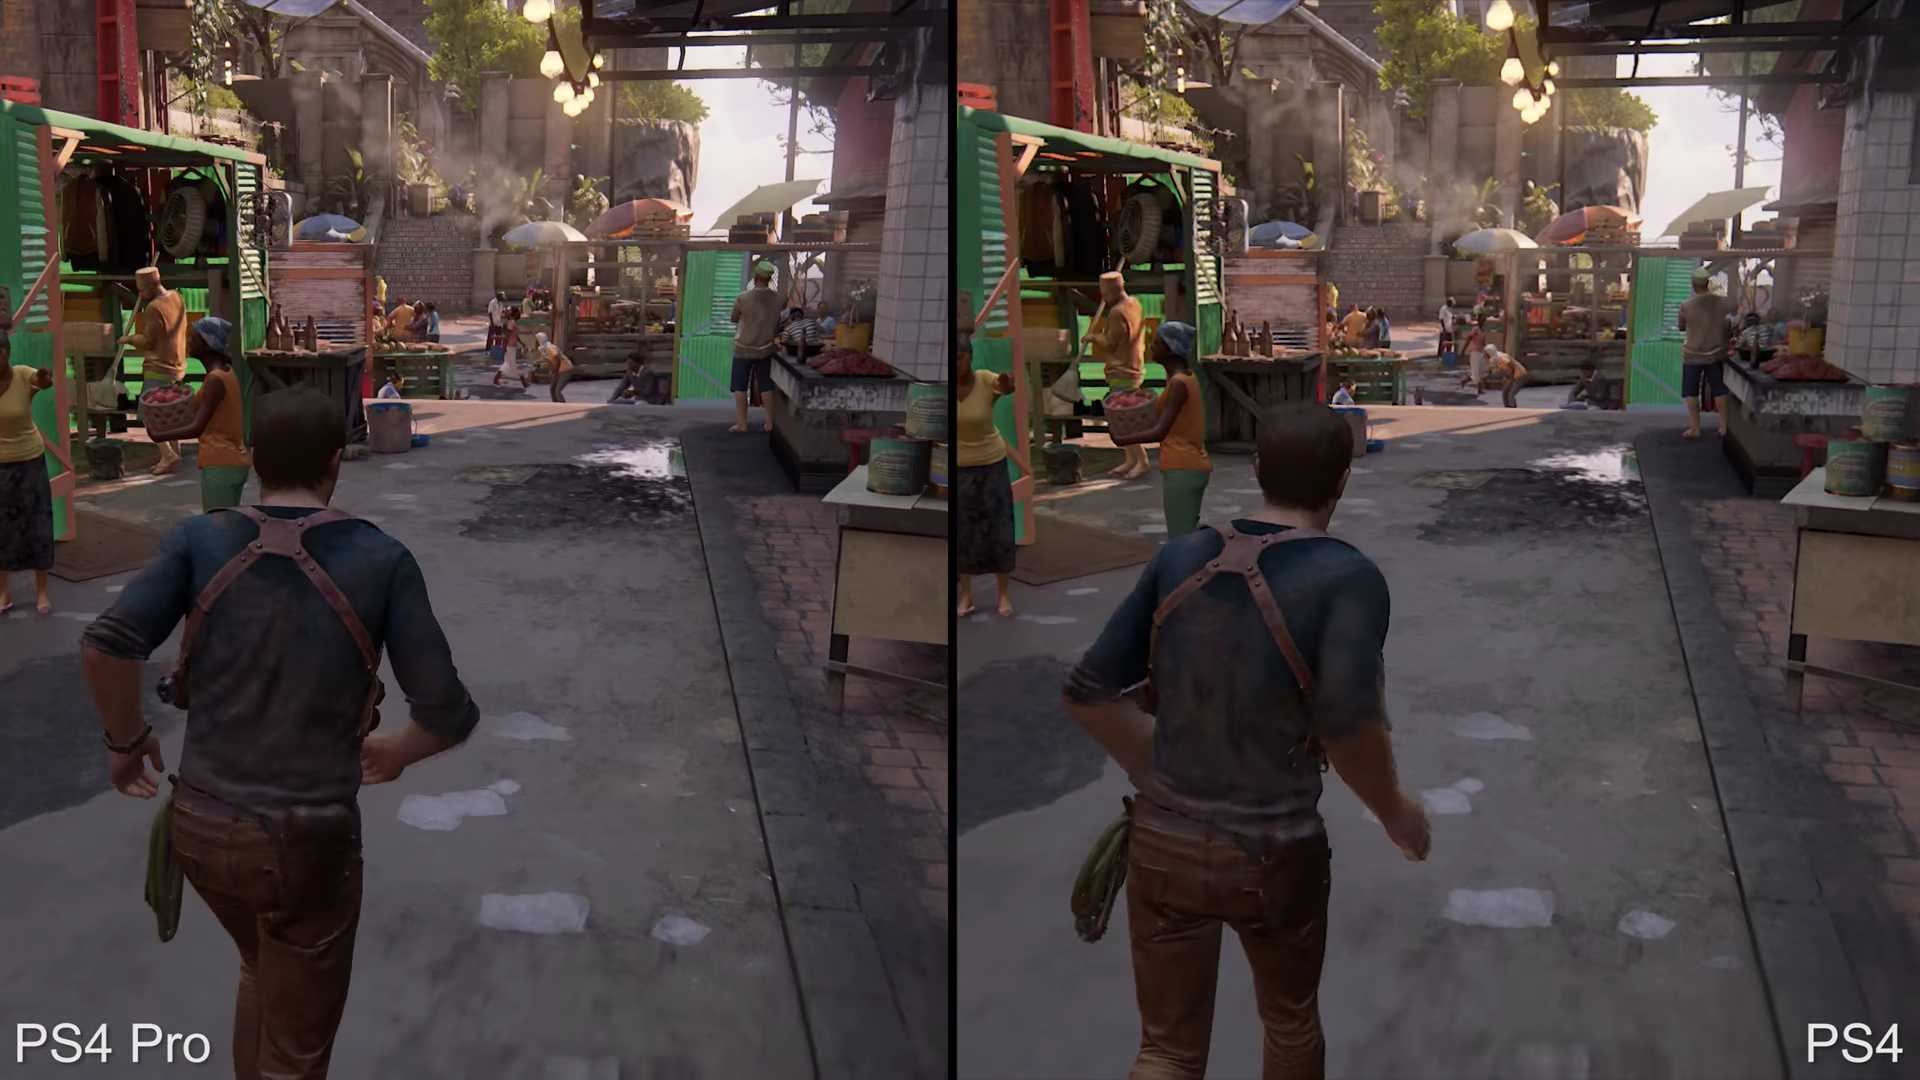 ps4 pro vs ps4 graphics comparison check out these gifs